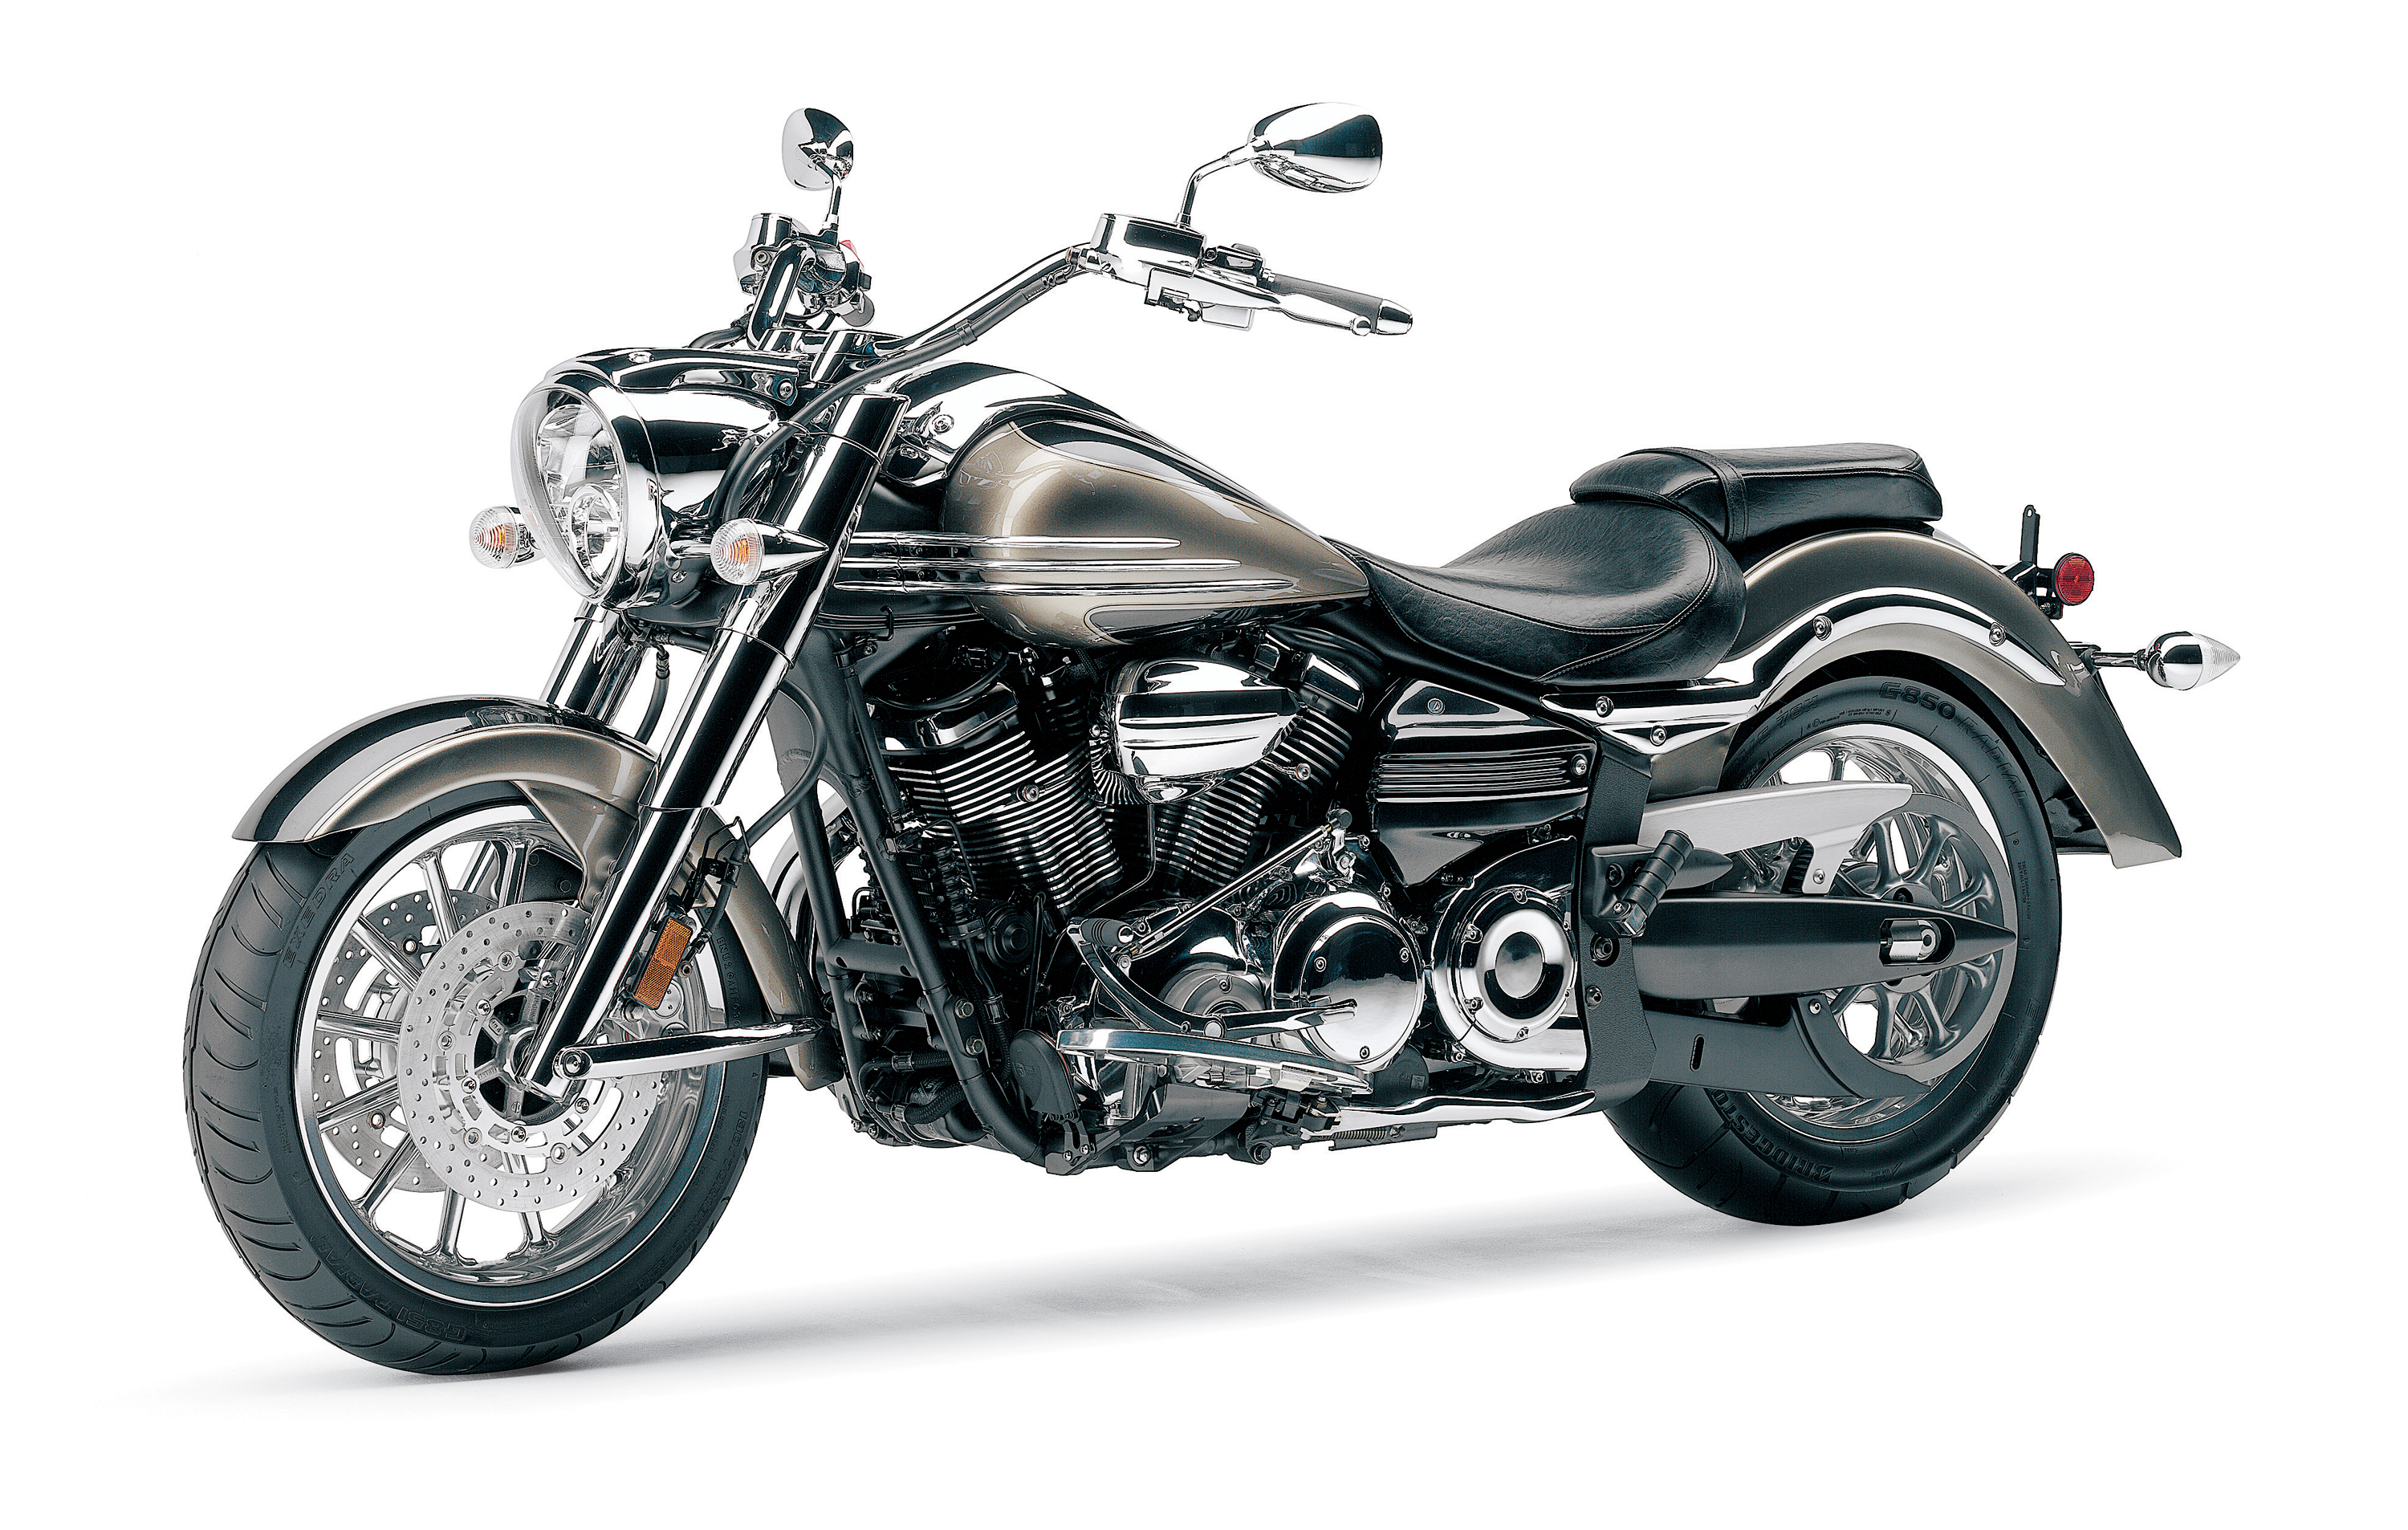 2006 yamaha roadliner s review top speed for 2006 yamaha stratoliner review